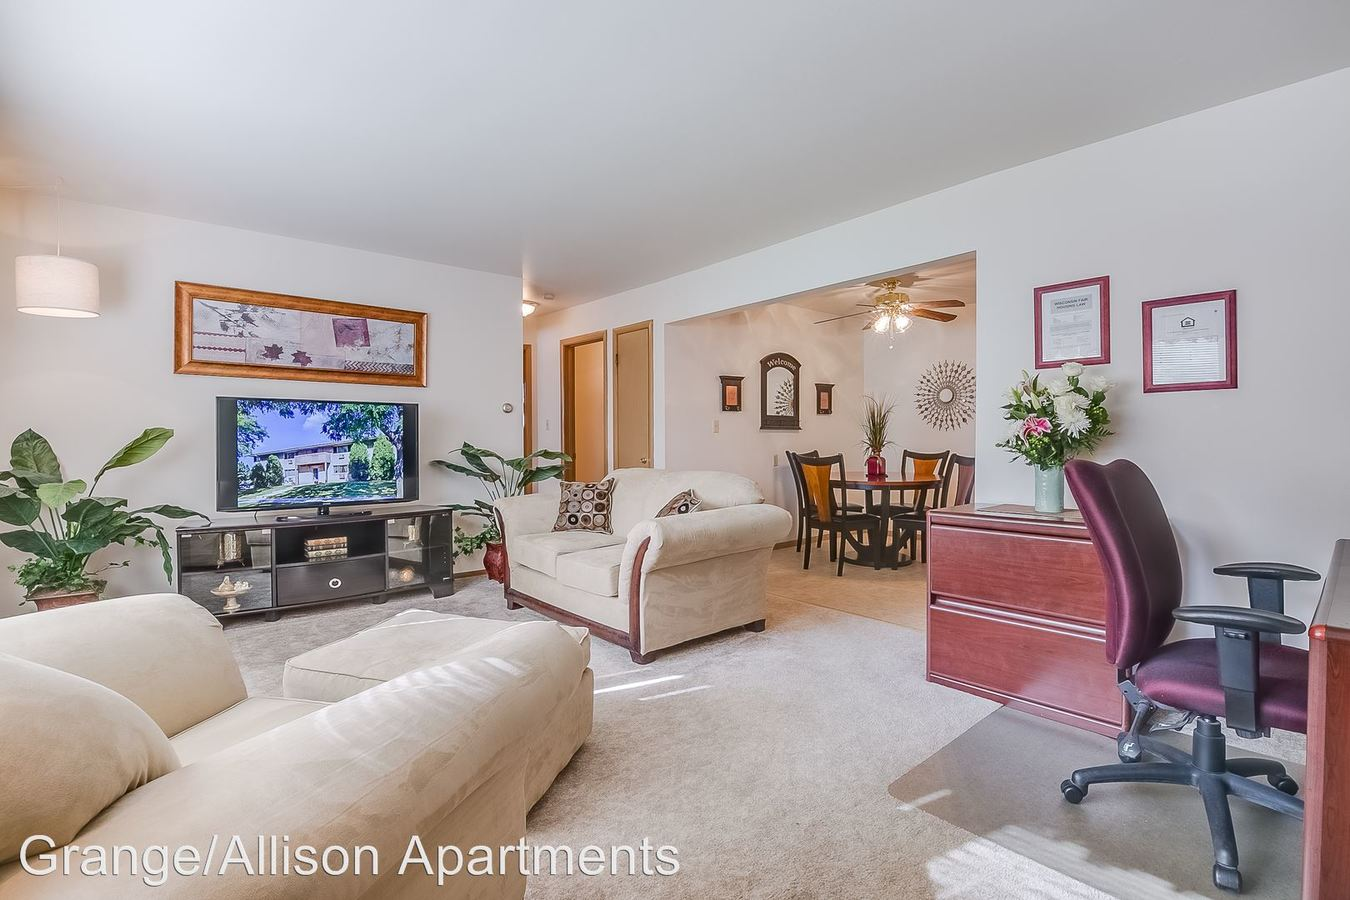 2 Bedrooms 1 Bathroom Apartment for rent at 2940e Allison Ave Apt 1 in Cudahy, WI